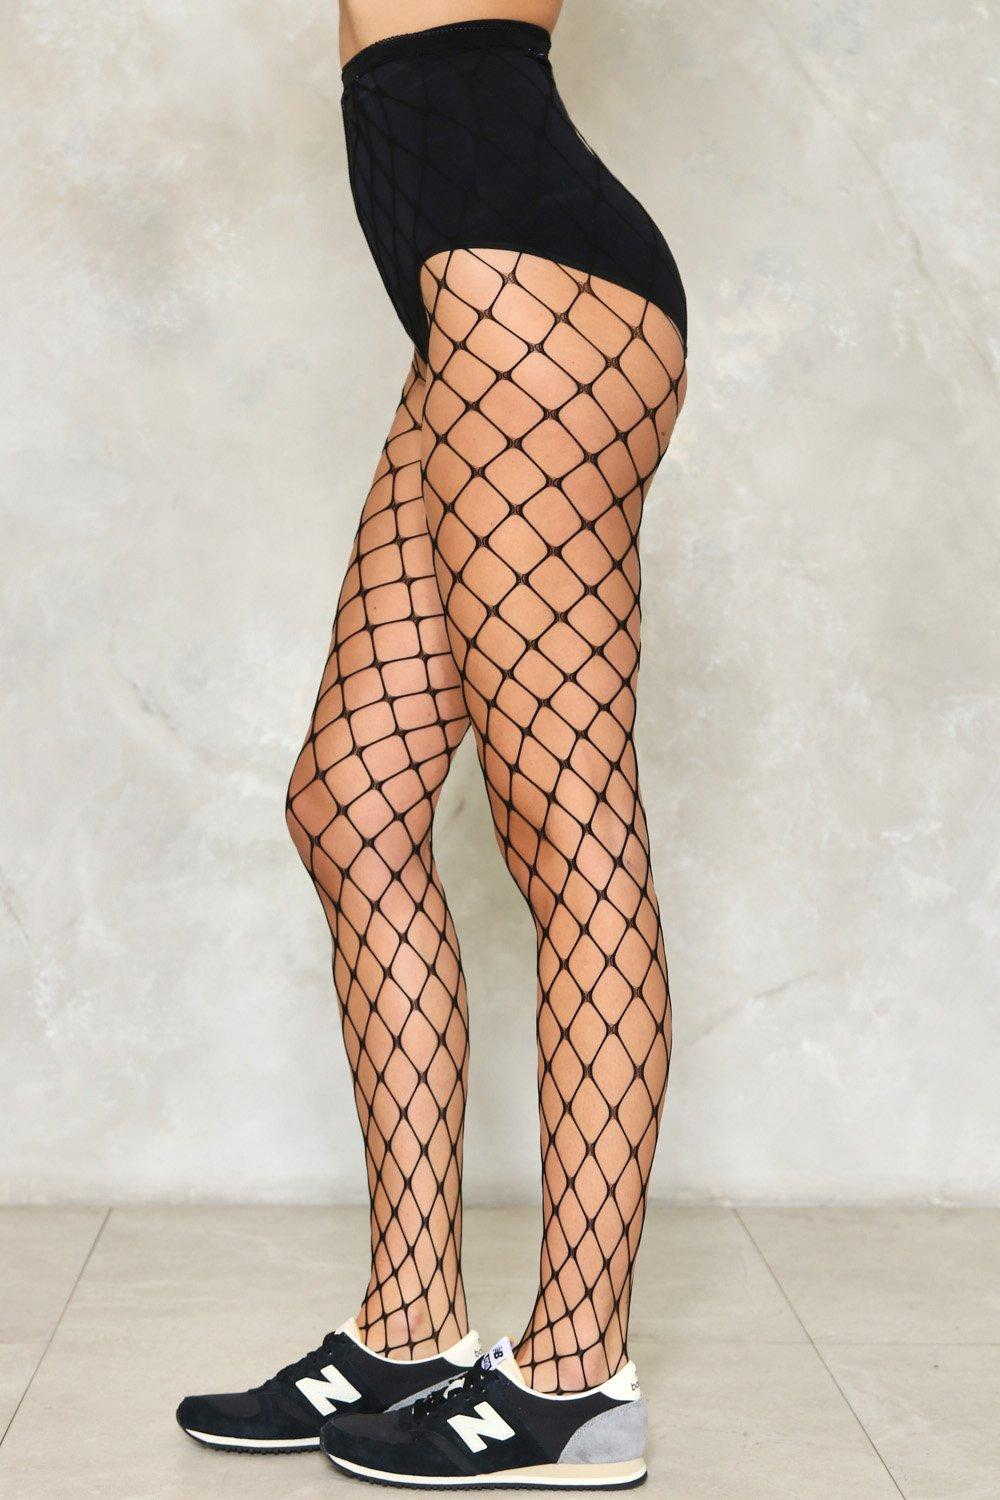 1f9d487870ded Cast Your Net Wider Fishnet Tights   Shop Clothes at Nasty Gal!